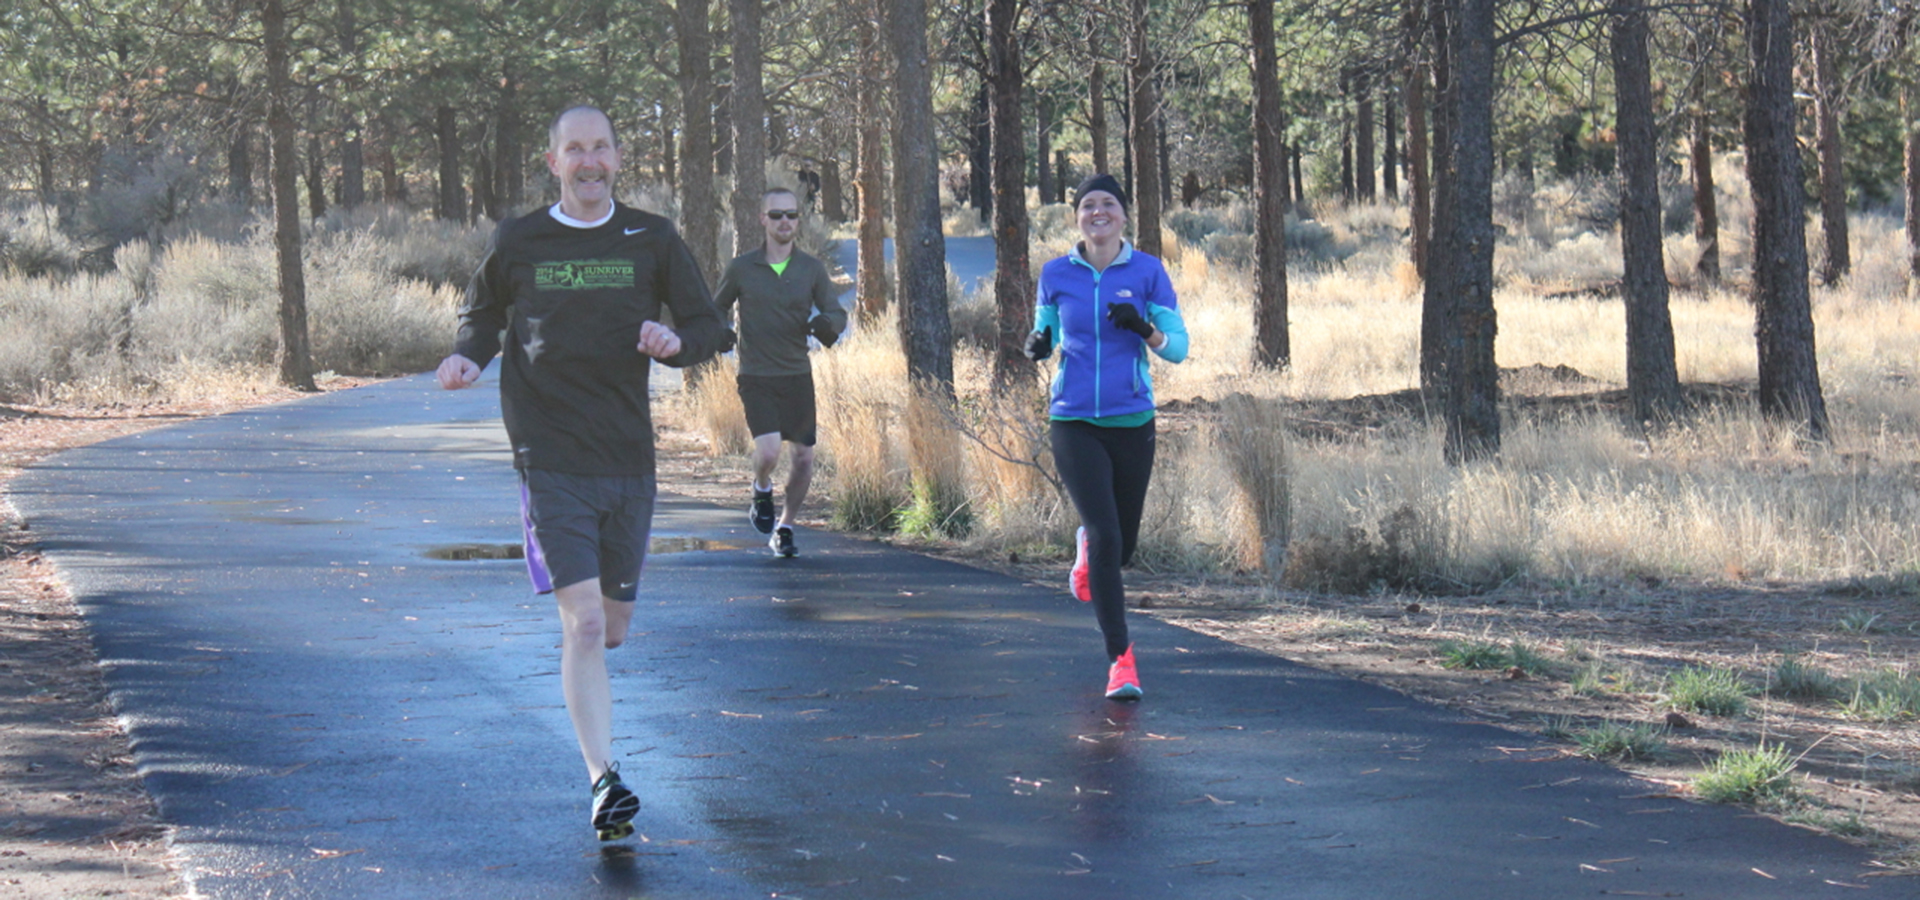 Pine Nursery Trail with runners